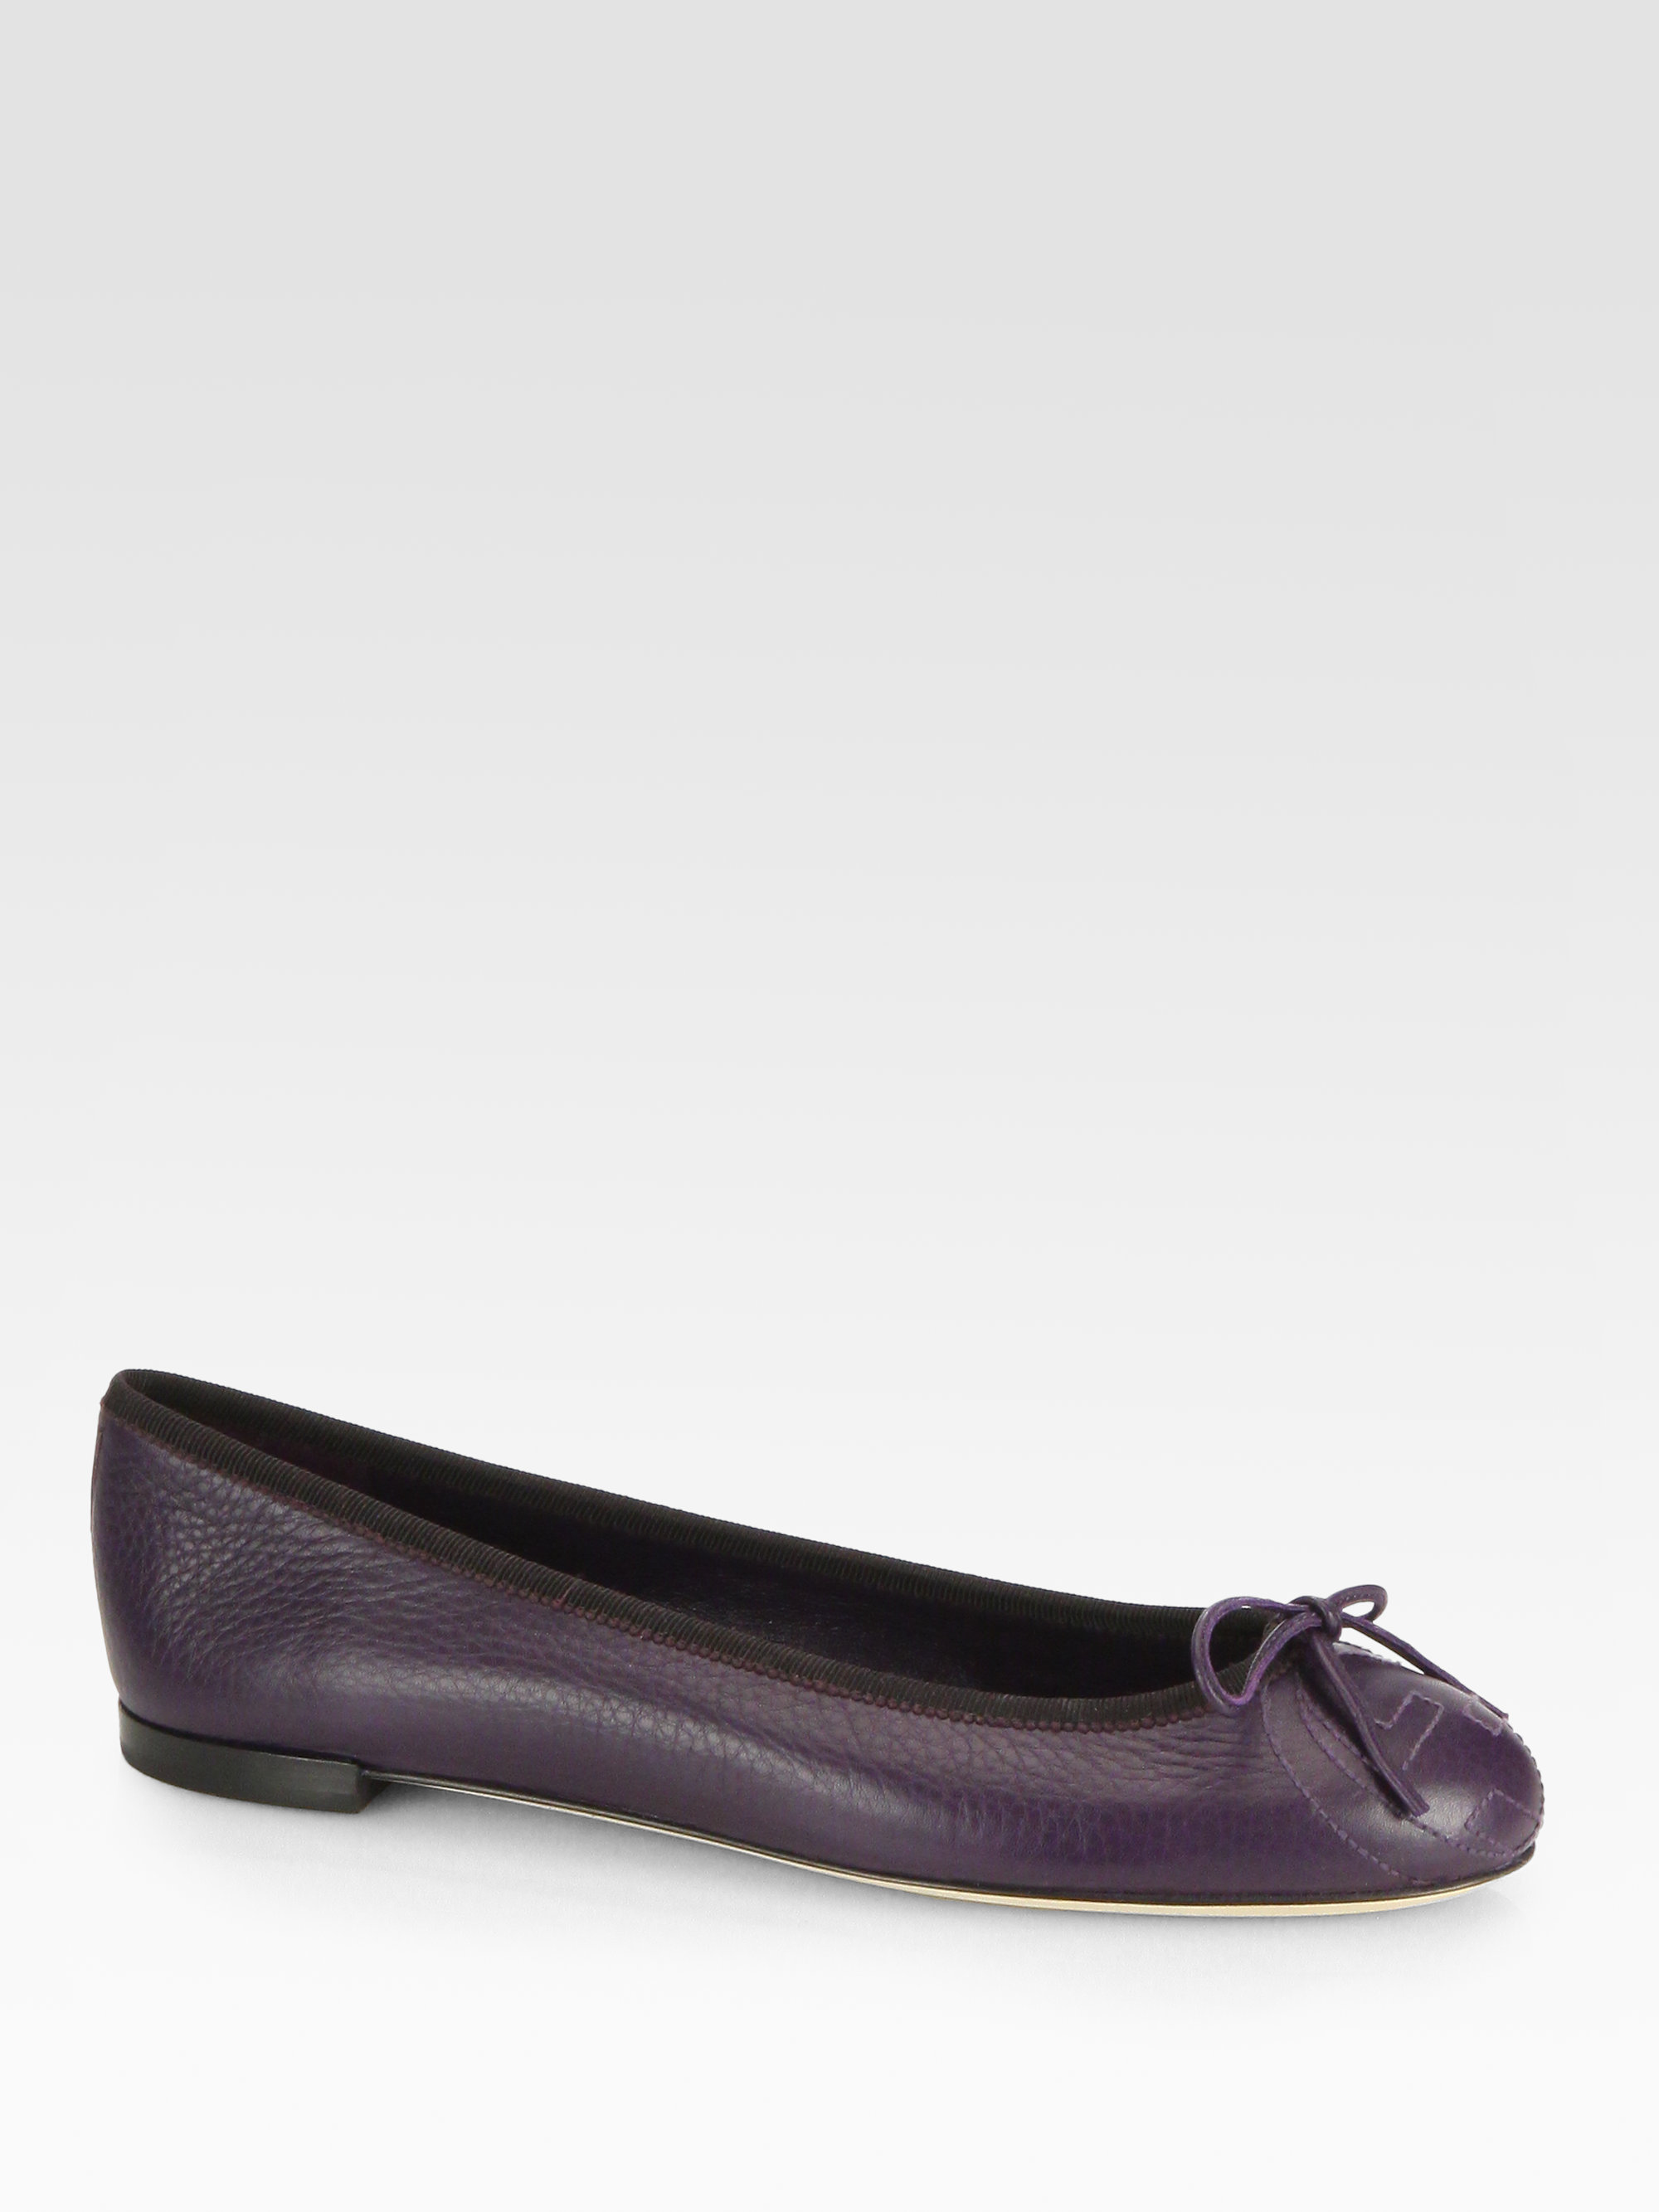 gucci gg embroidered leather ballet flats in purple lyst. Black Bedroom Furniture Sets. Home Design Ideas